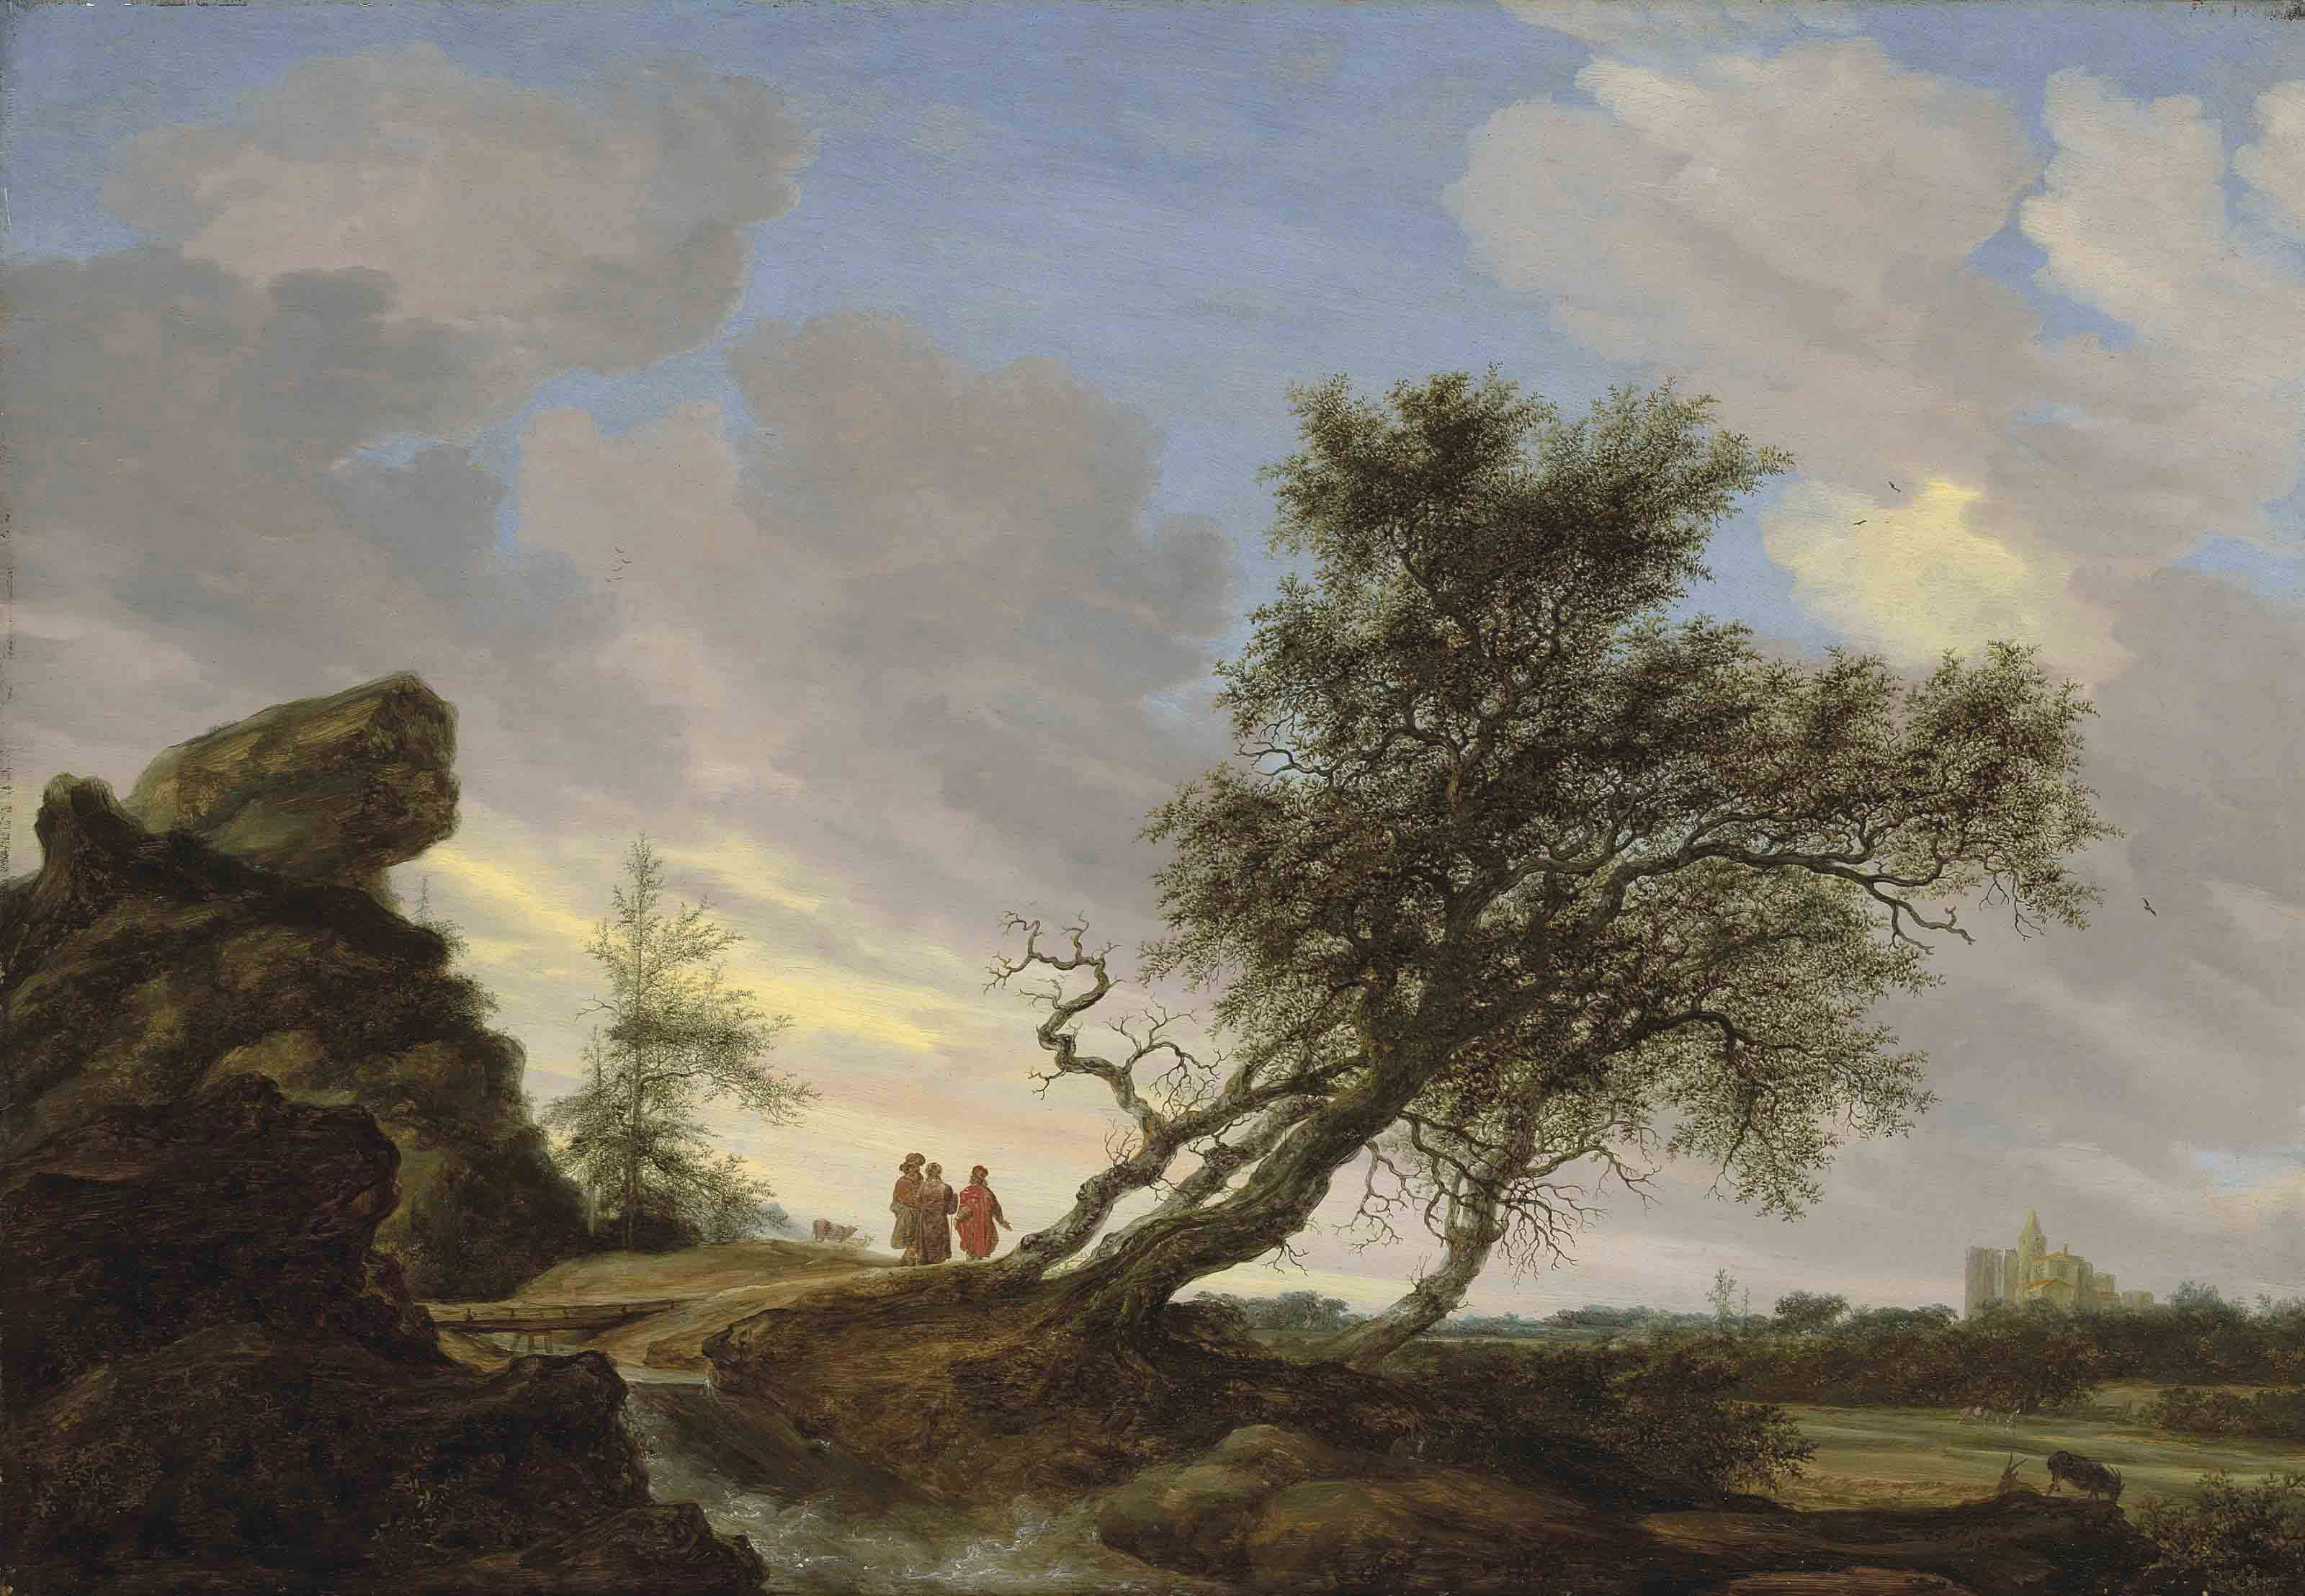 An extensive landscape with the Road to Emmaus